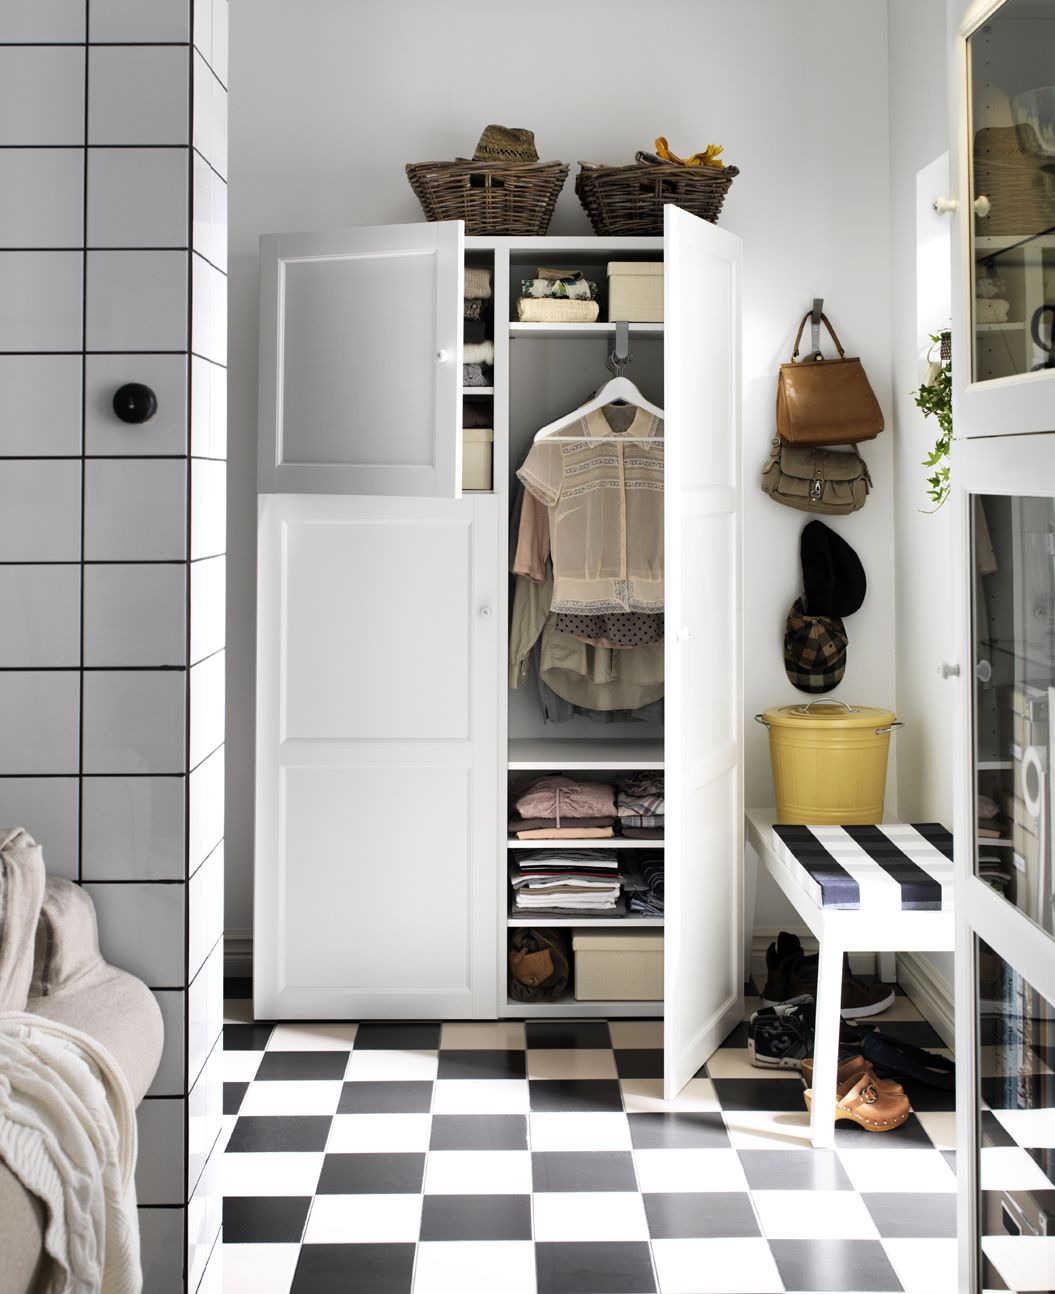 wohnzimmer wohnzimmerm bel online kaufen ikea wohnen pinterest ikea living room und room. Black Bedroom Furniture Sets. Home Design Ideas